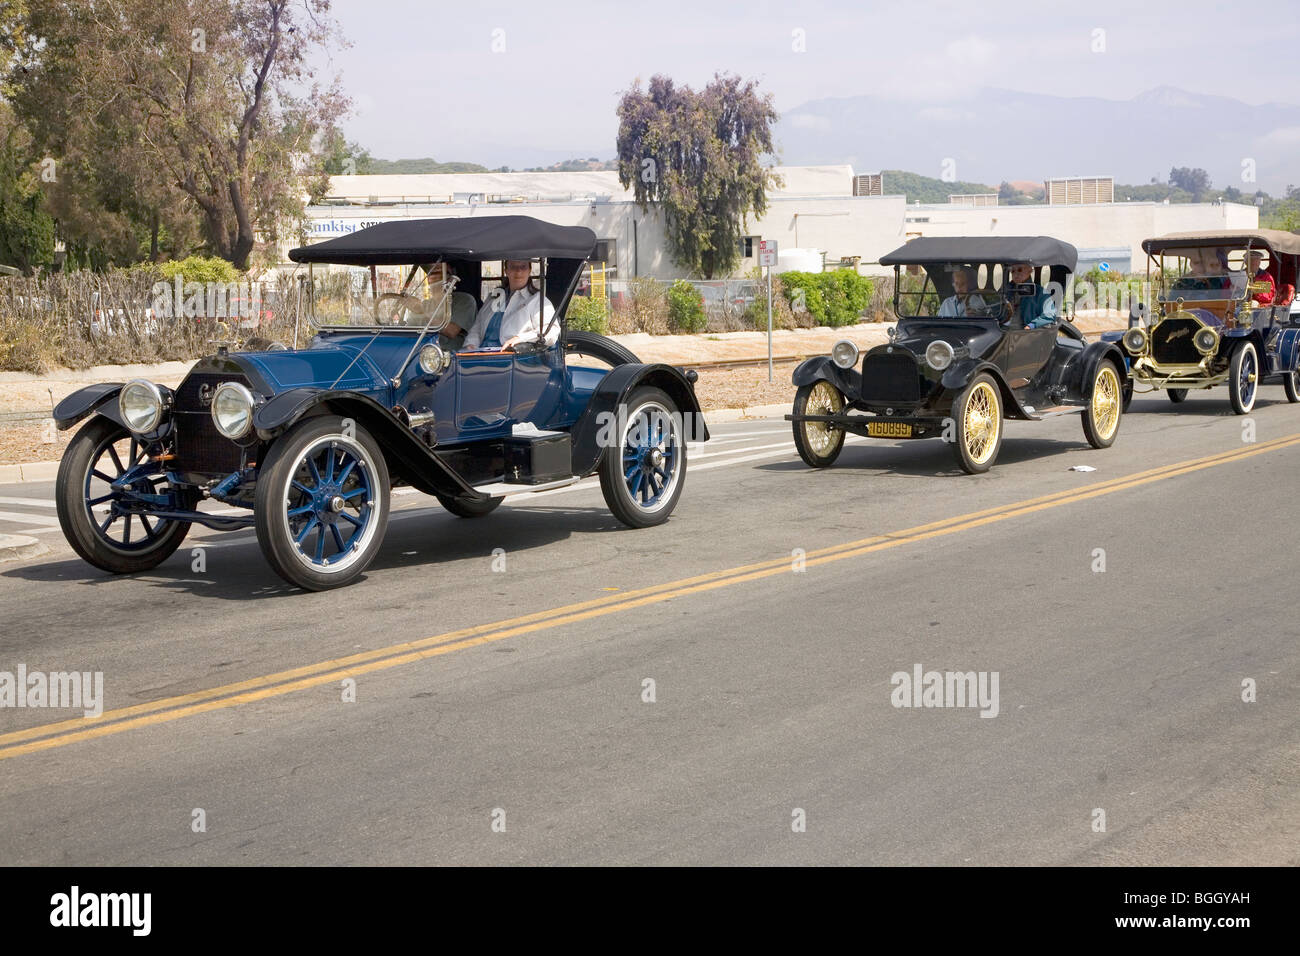 Antique cars and people in old-fashioned clothing in Santa Paula, CA ...